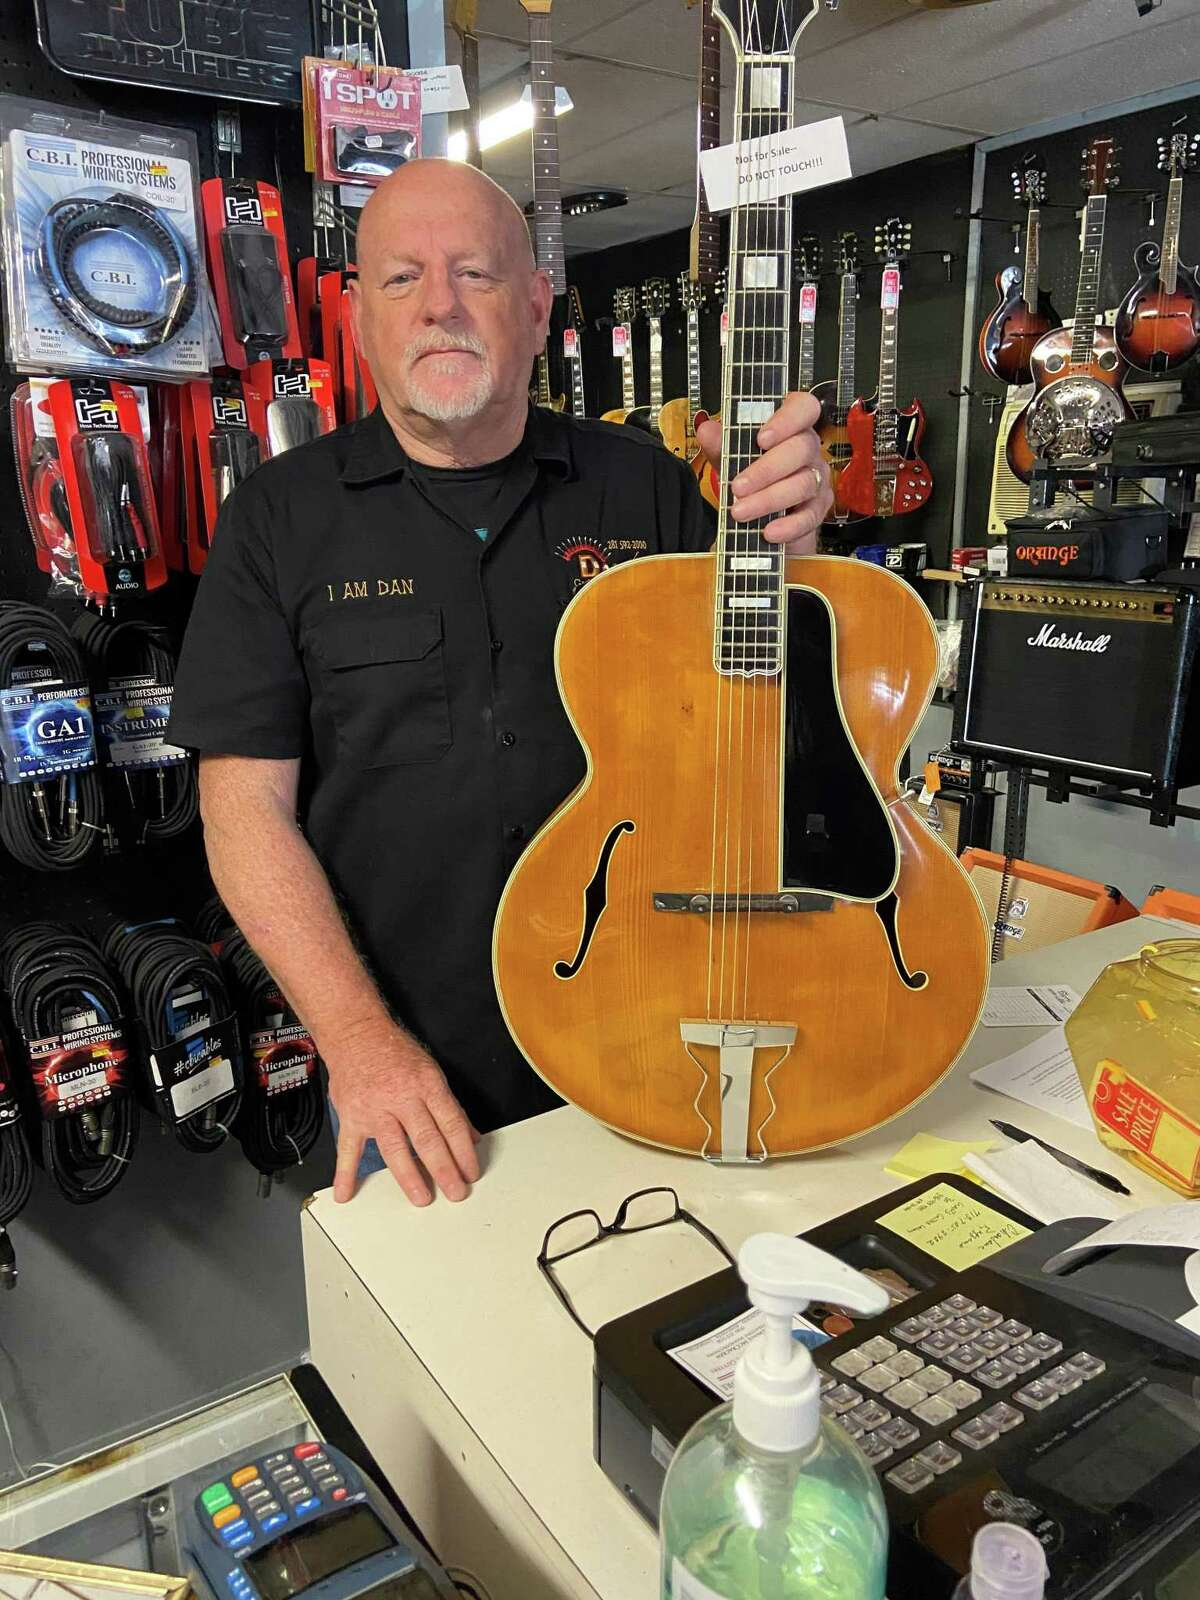 Dan's Guitars and Music has been in Cleveland since 2006, owned and operated by Dan Kiblinger with over 35 years in the music industry. Dan's Guitars has a large collection of vintage guitars they buy, sell, restore and repair from collectors, rock artists, country artists, and even recovered from floods. Pictured here is owner Dan Kiblinger.